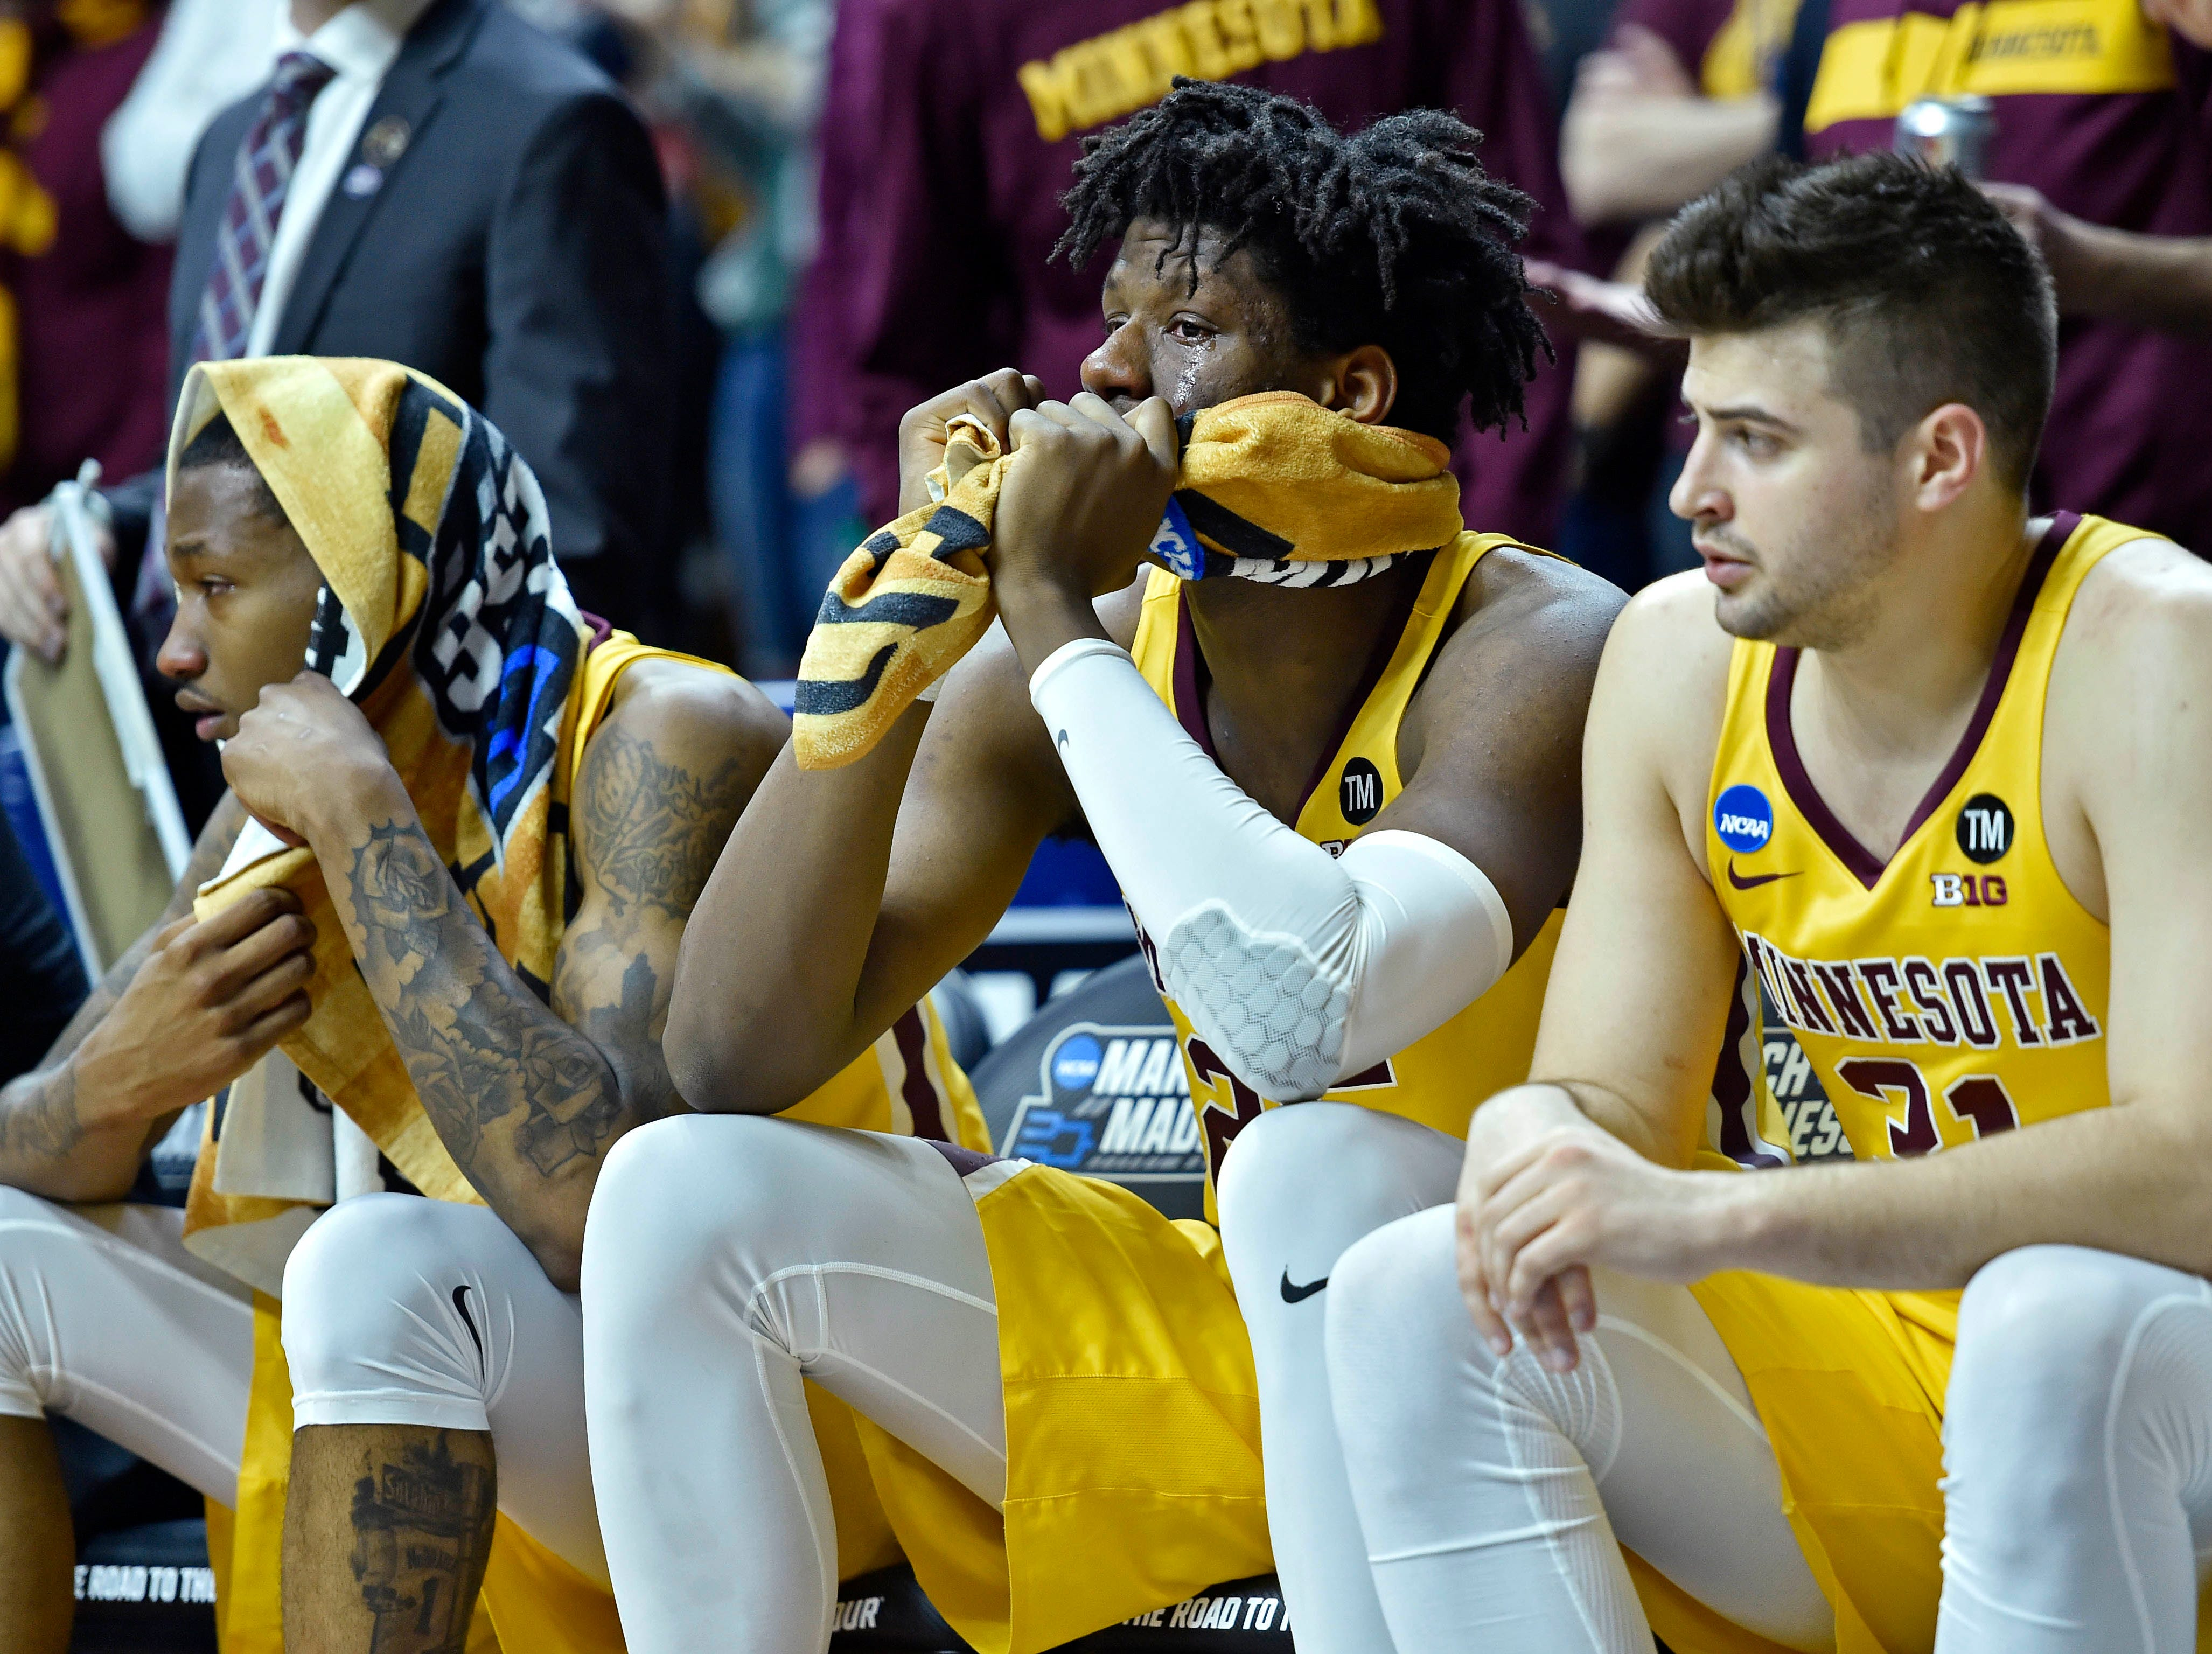 Mar 23, 2019; Des Moines, IA, United States; Minnesota Golden Gophers center Daniel Oturu (25) reacts on the bench during the second half against the Michigan State Spartans in the second round of the 2019 NCAA Tournament at Wells Fargo Arena. Mandatory Credit: Jeffrey Becker-USA TODAY Sports